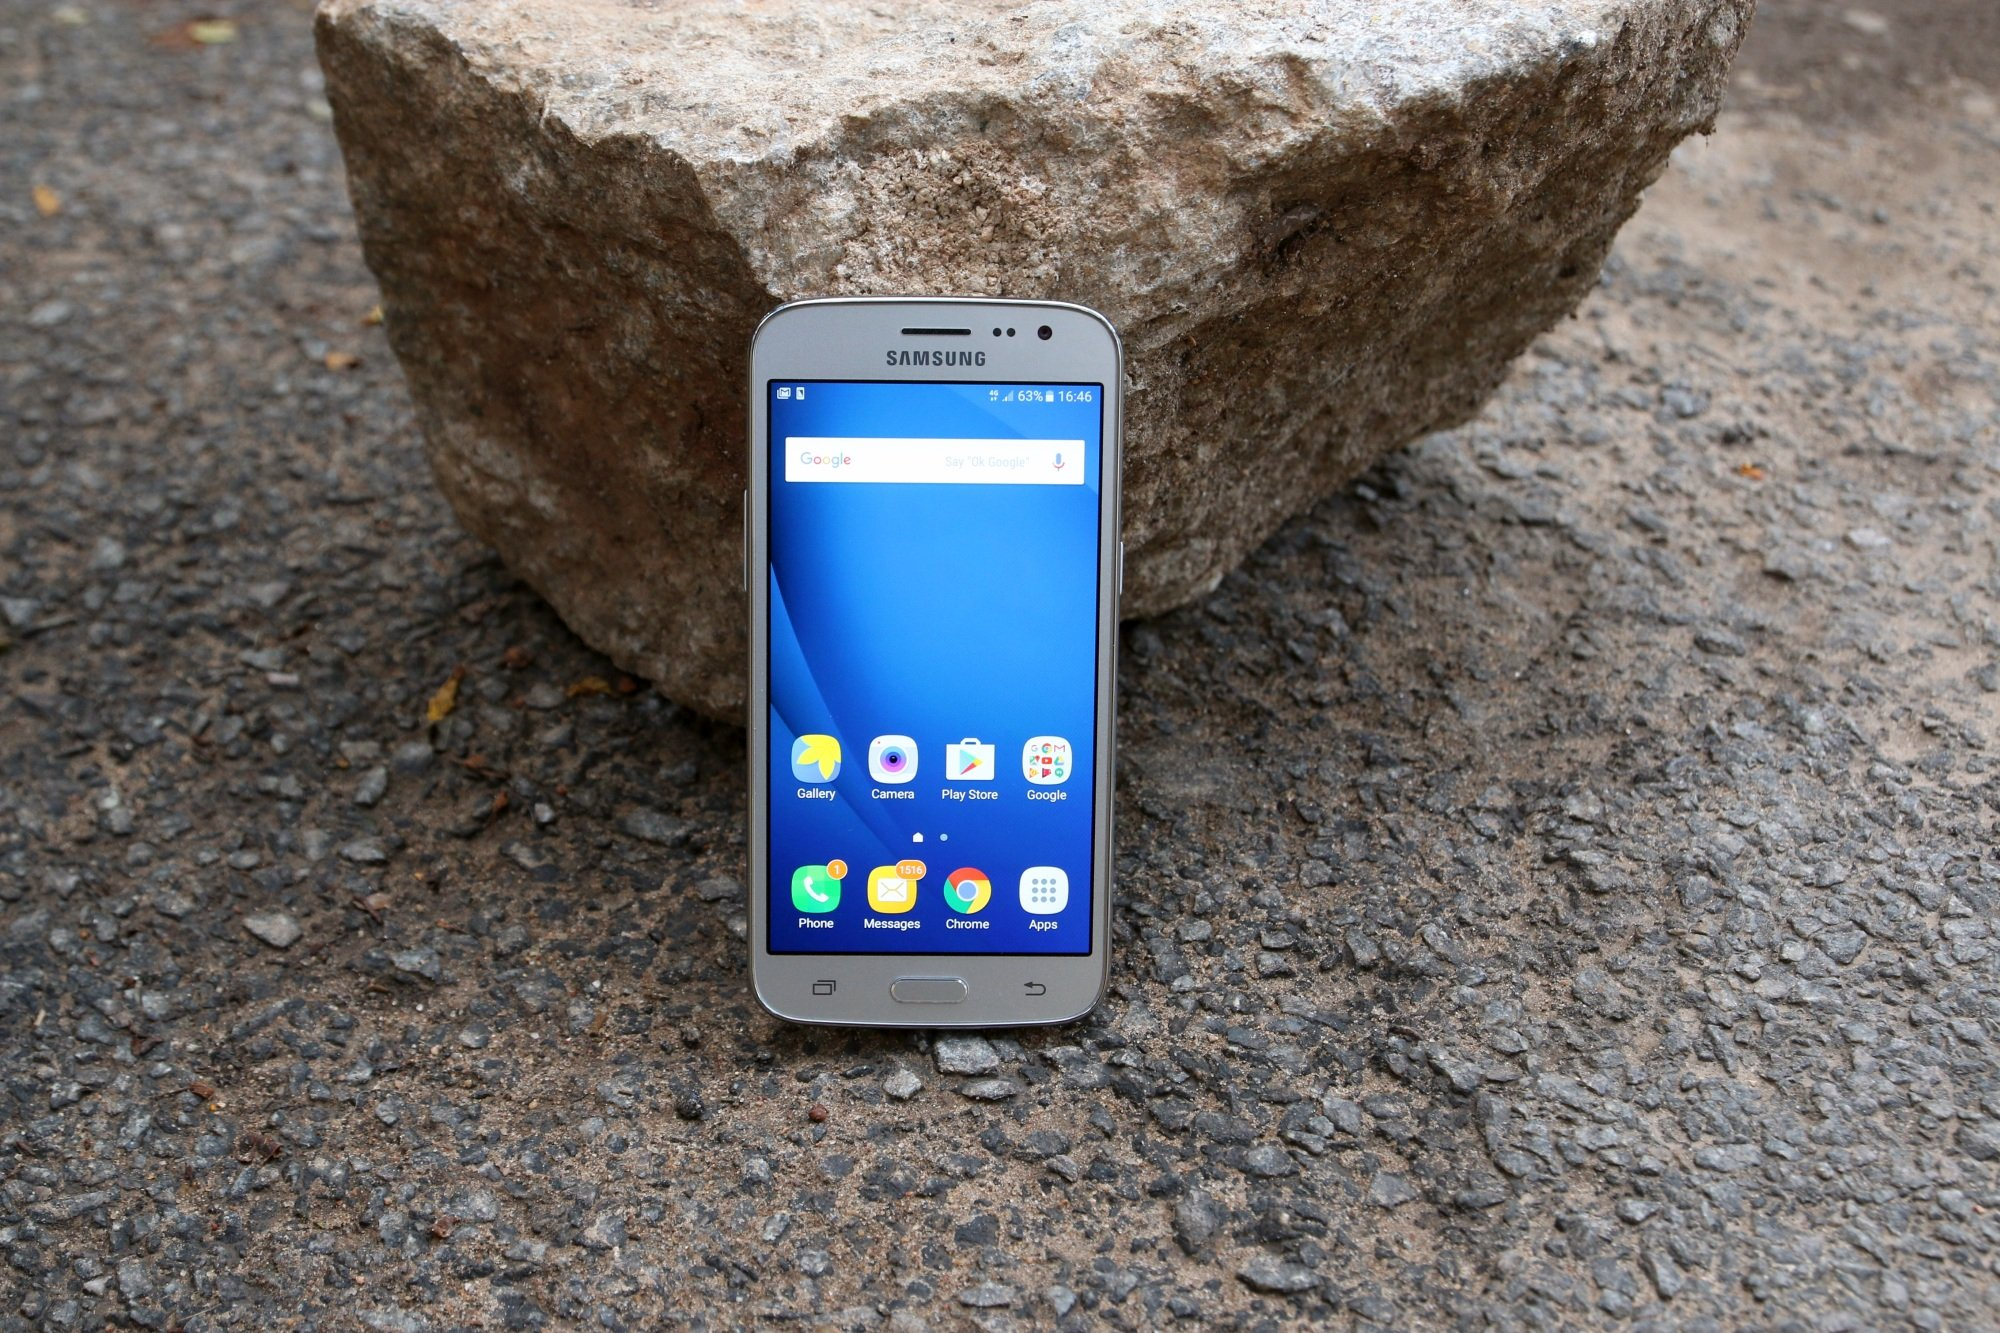 Samsung Galaxy J2 (2016) Review: A budget phone that fails on